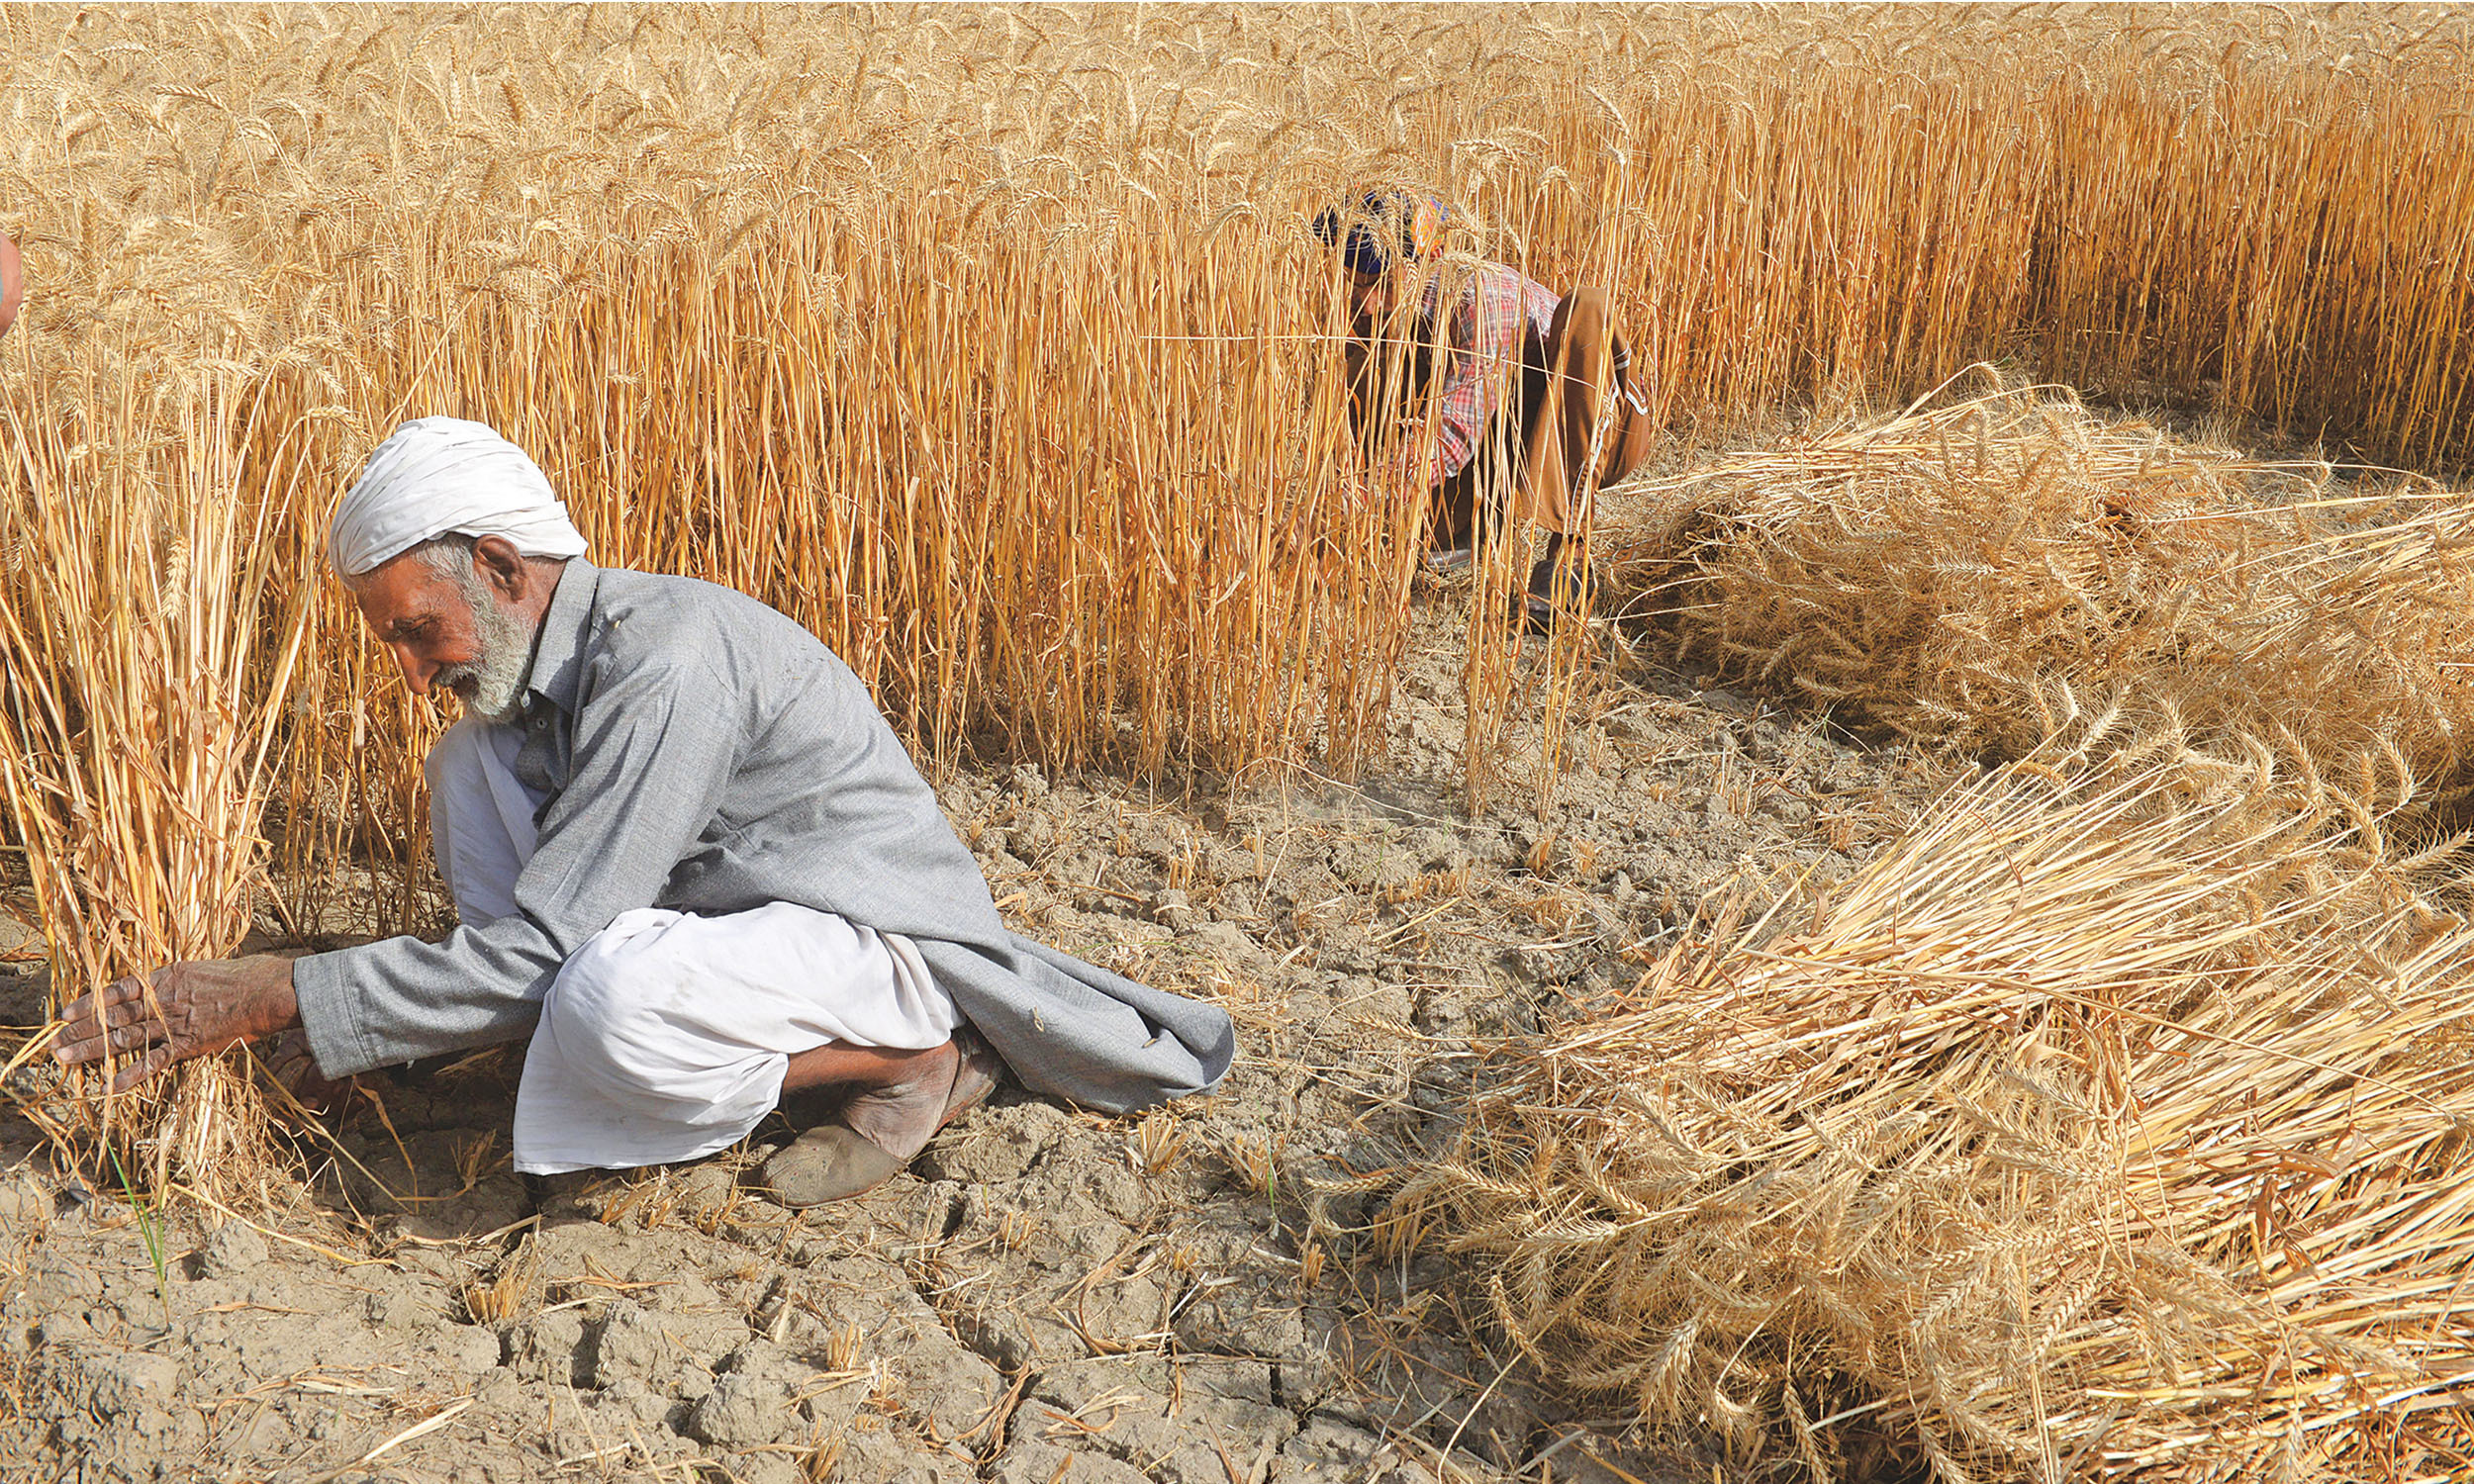 Farmers in a wheat field | Tariq Mahmood, White Star